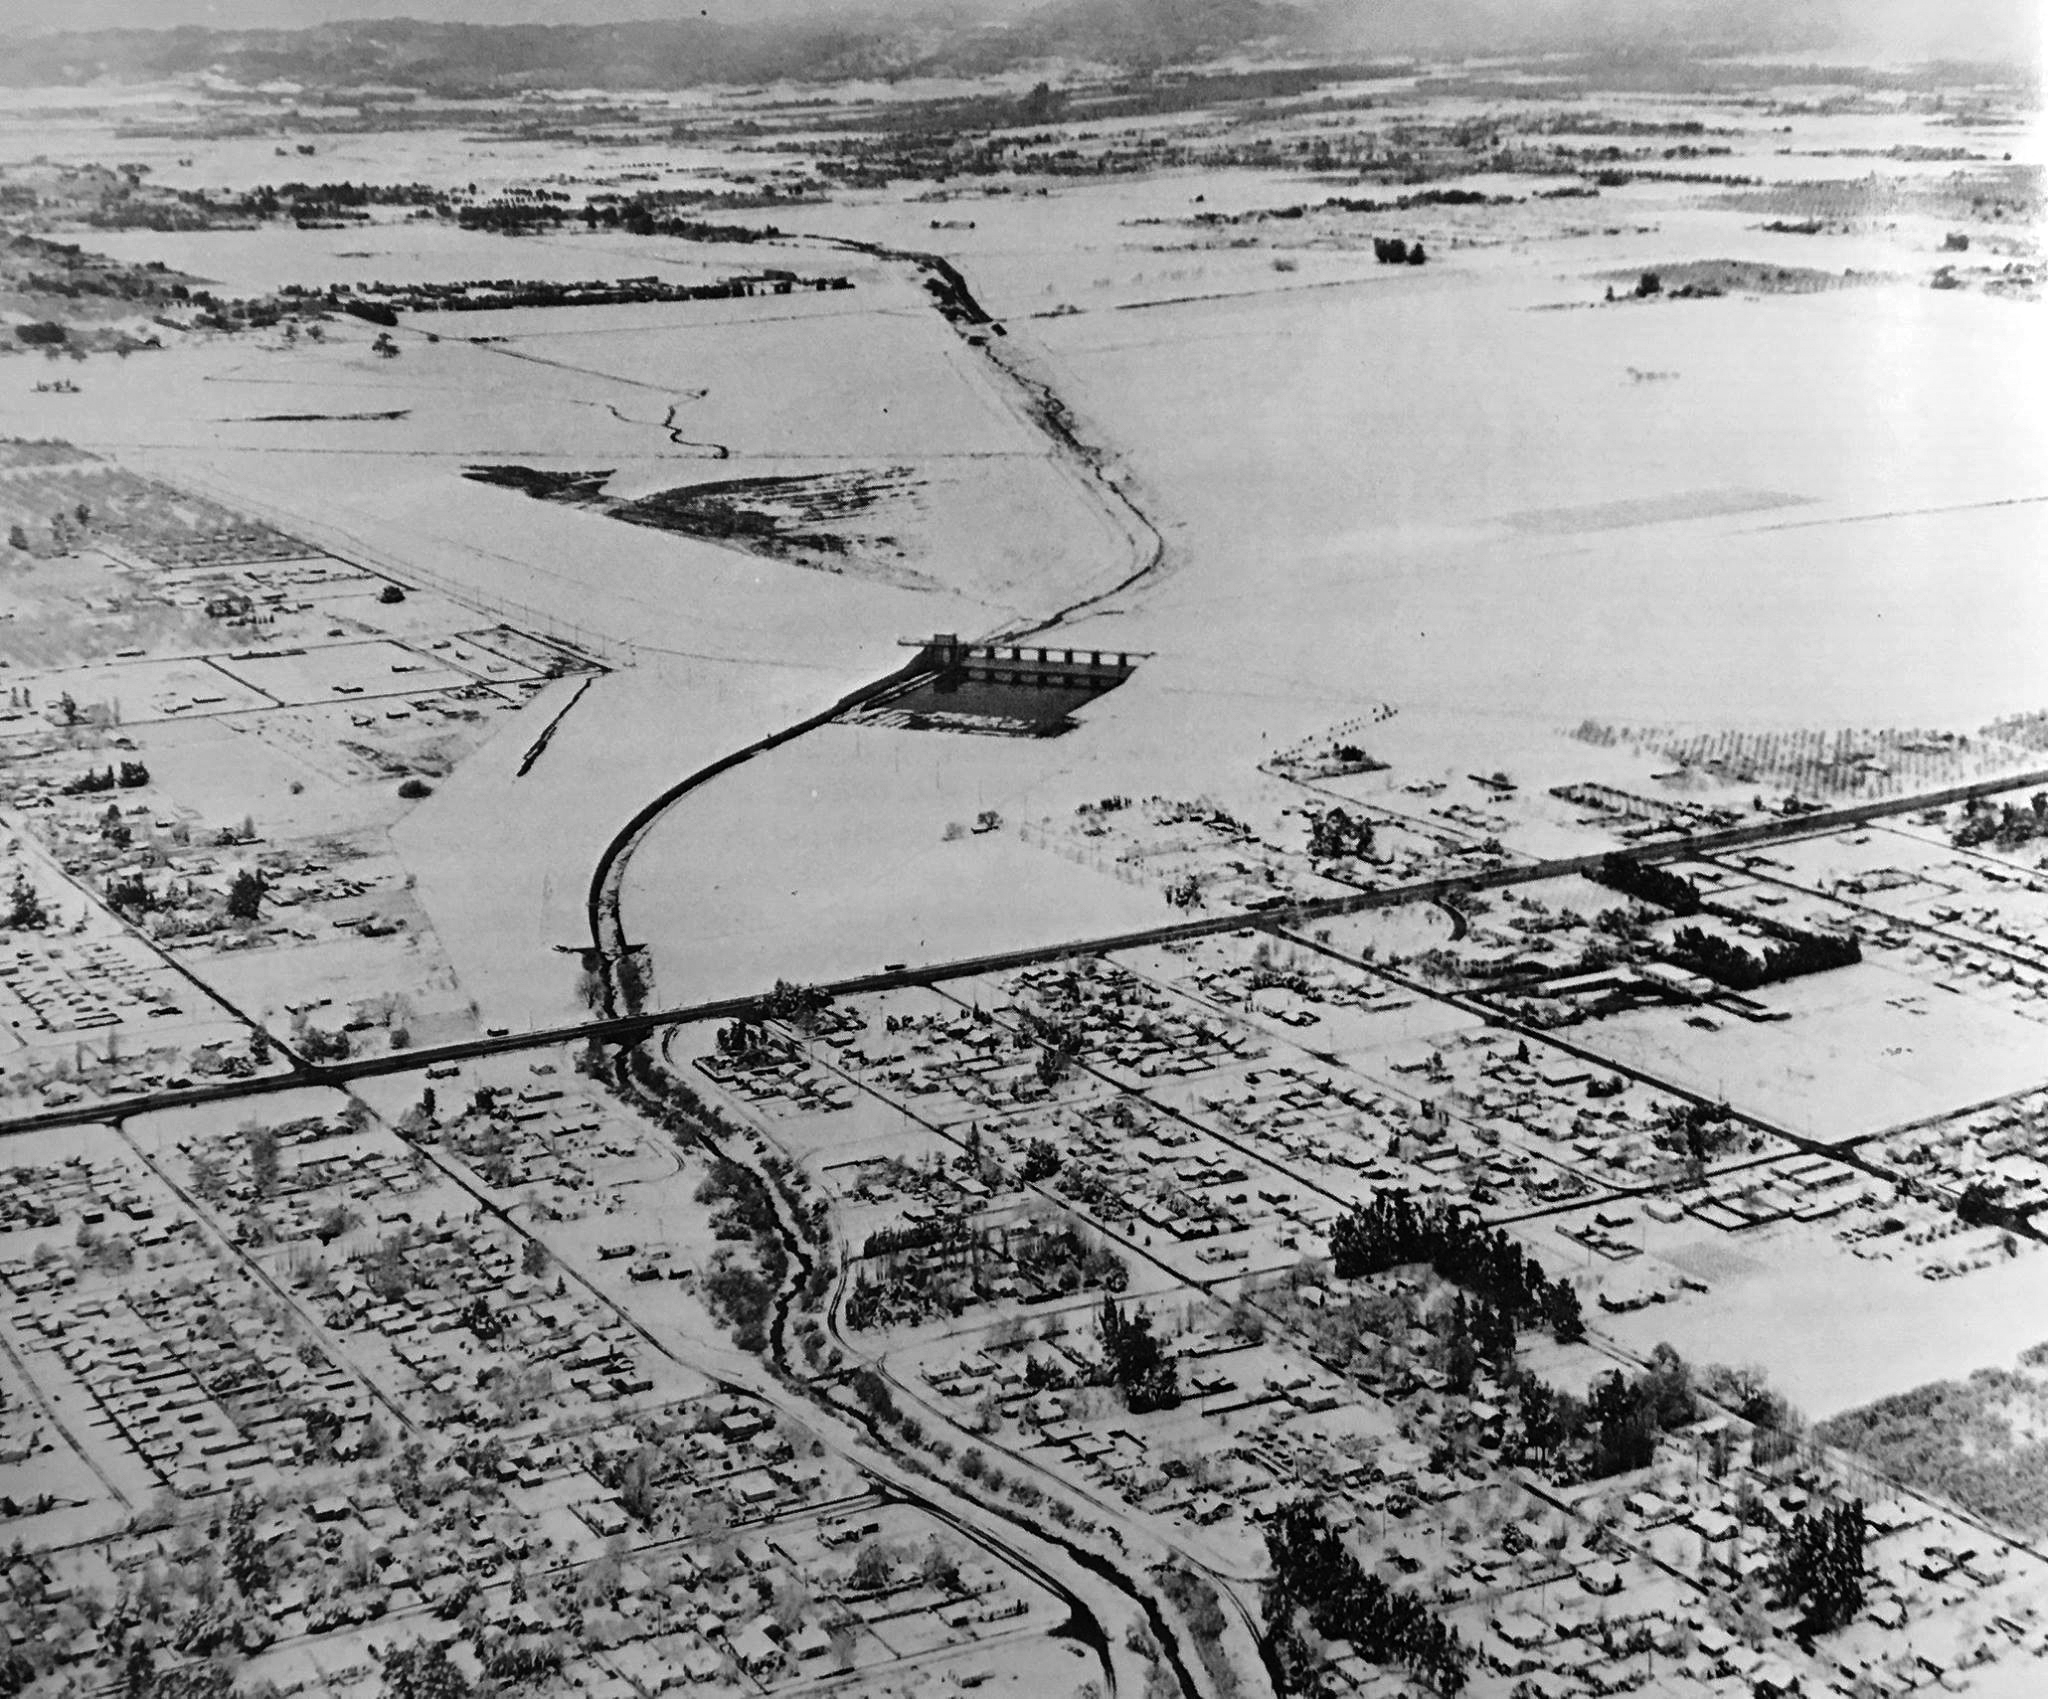 Water And Power Associates 1930 Chevrolet Wiring Diagram 1949 Aerial View Looking Northwest Showing The Effect Of A Three Day Snow Storm Janurary 9th Through January 11th Sepulveda Boulevard Is Seen